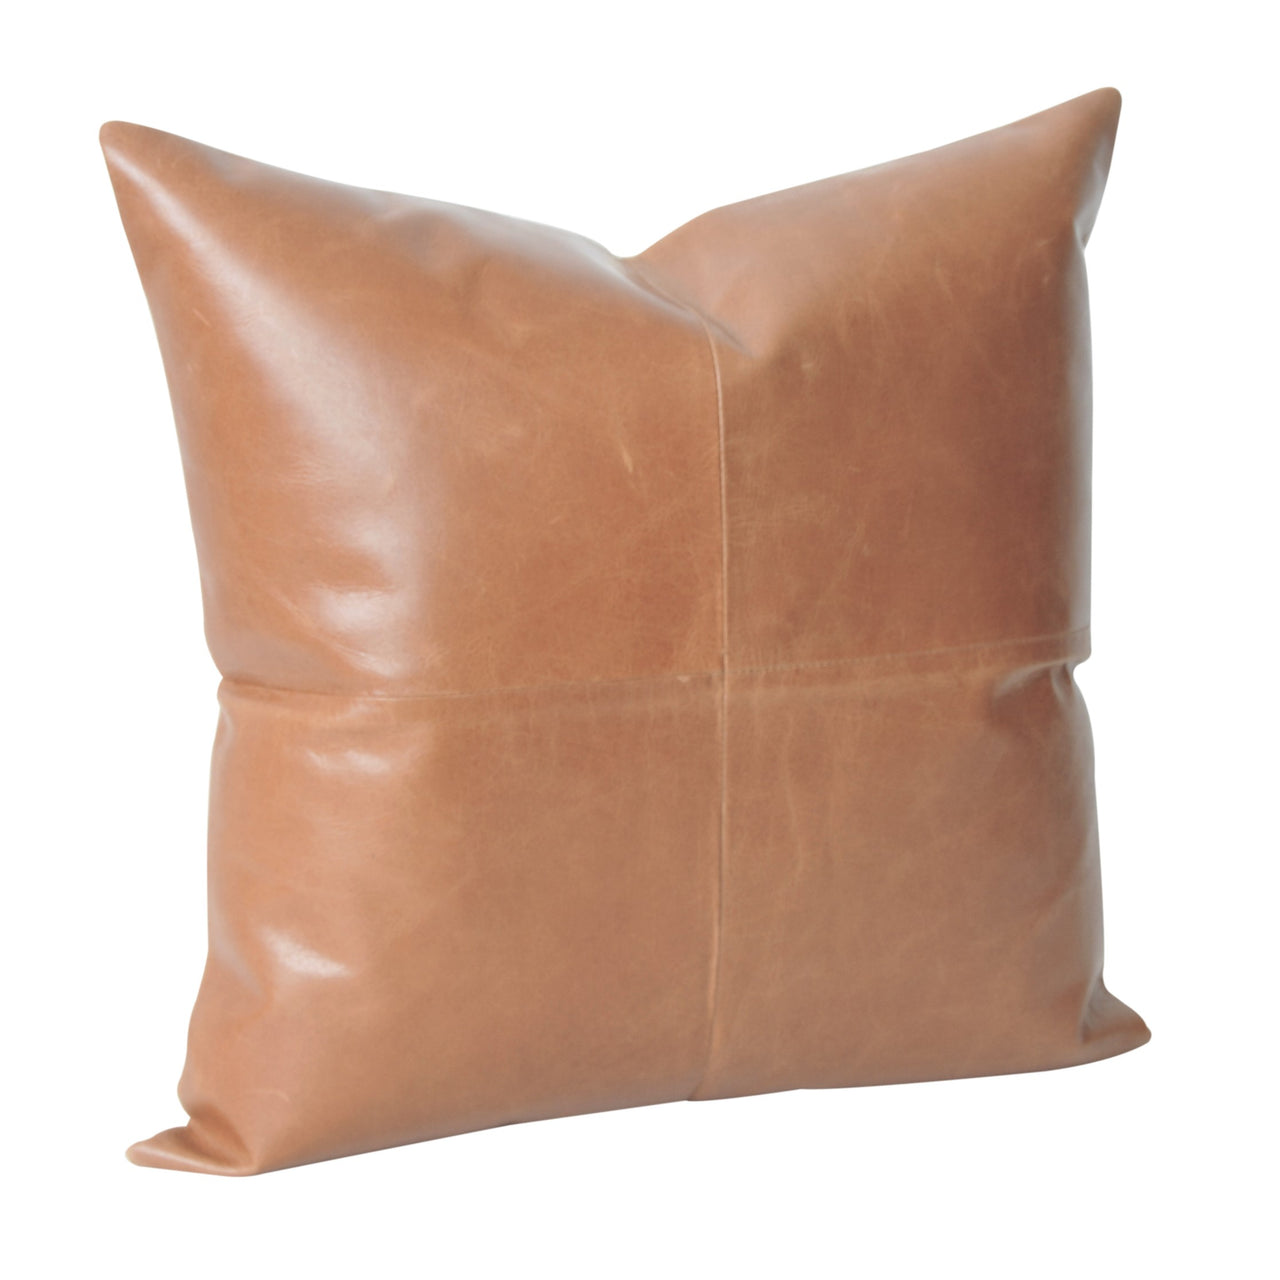 Leather Luxe Cushion- Tan